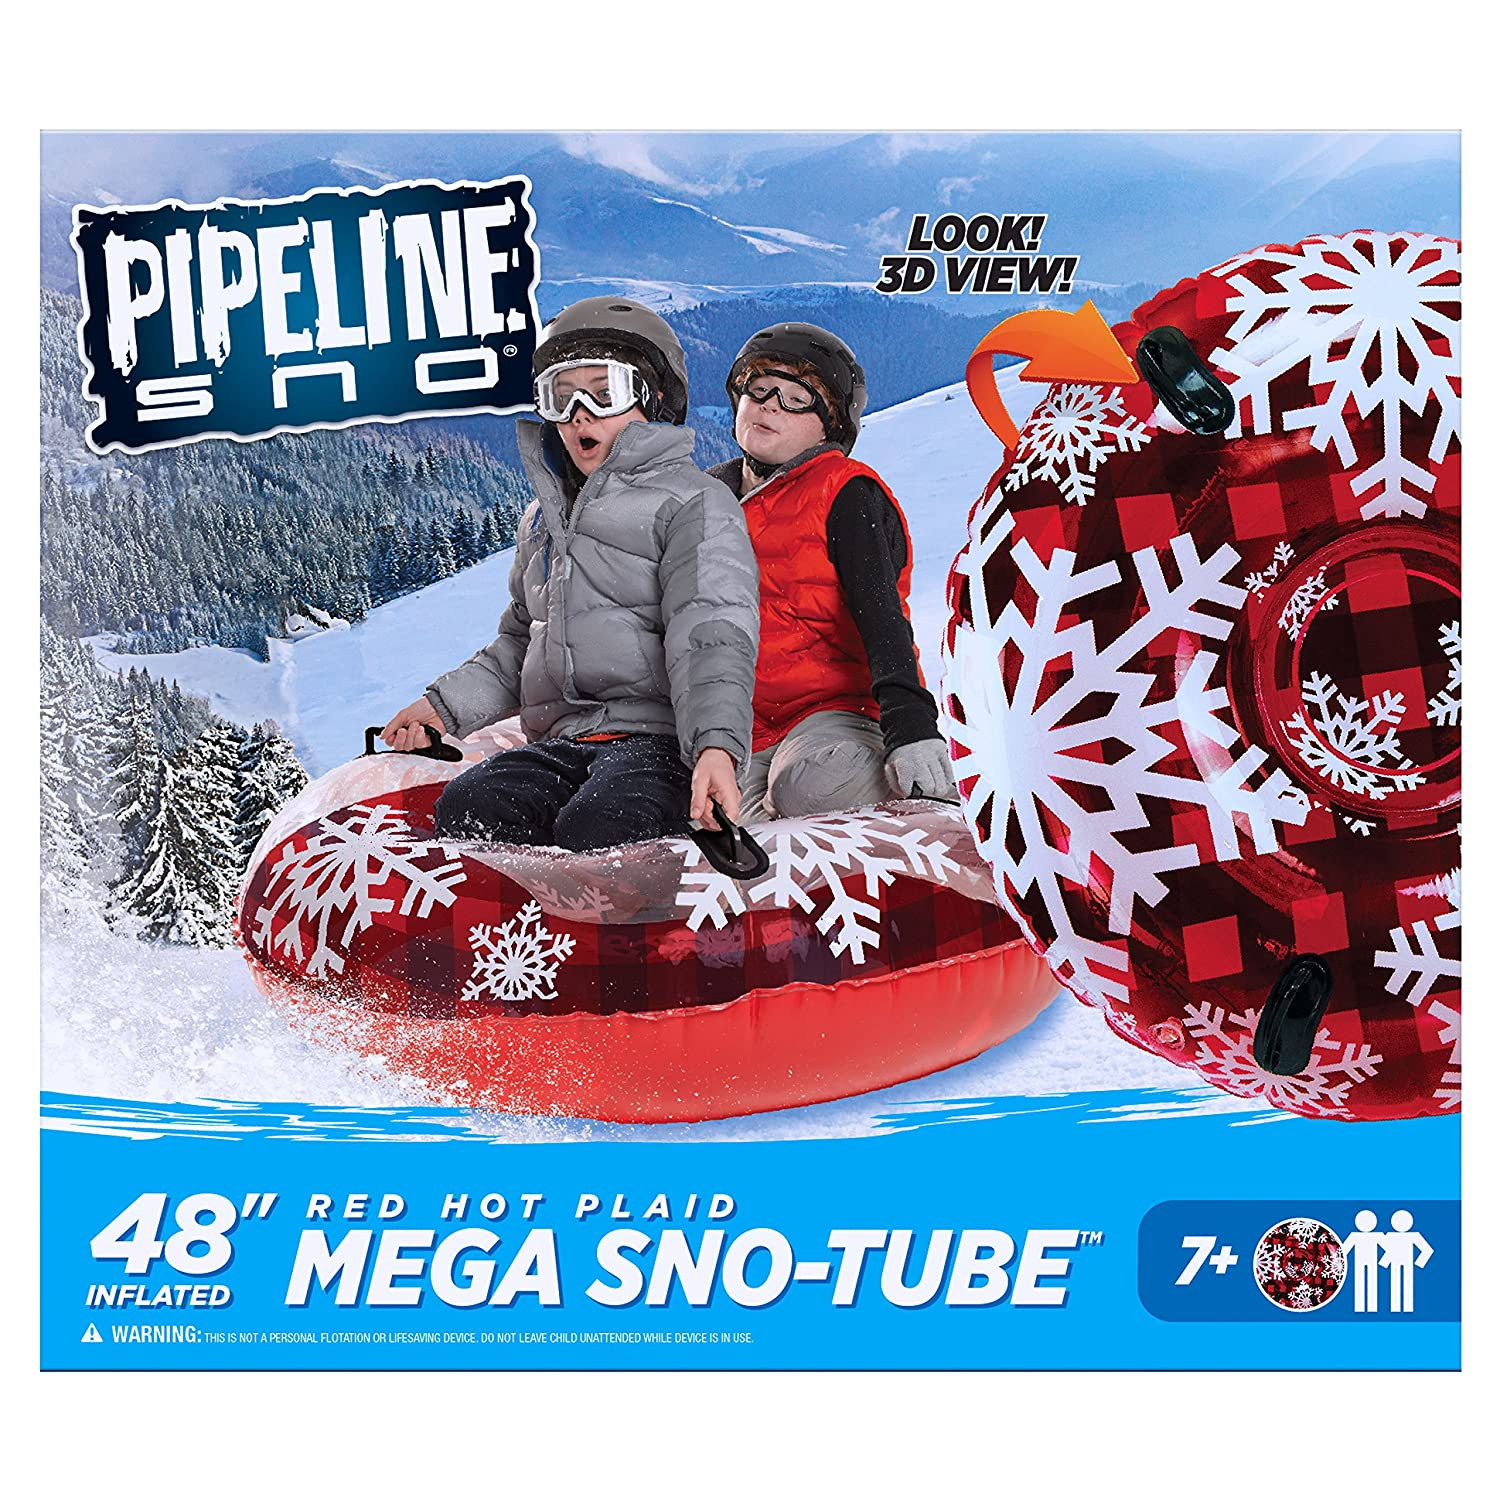 a8075896562 Amazon.com  Pipeline Sno Red Hot Plaid Inflatable 2 Person MEGA Snow Tube  with 4 Grip Handles and Repair Kit